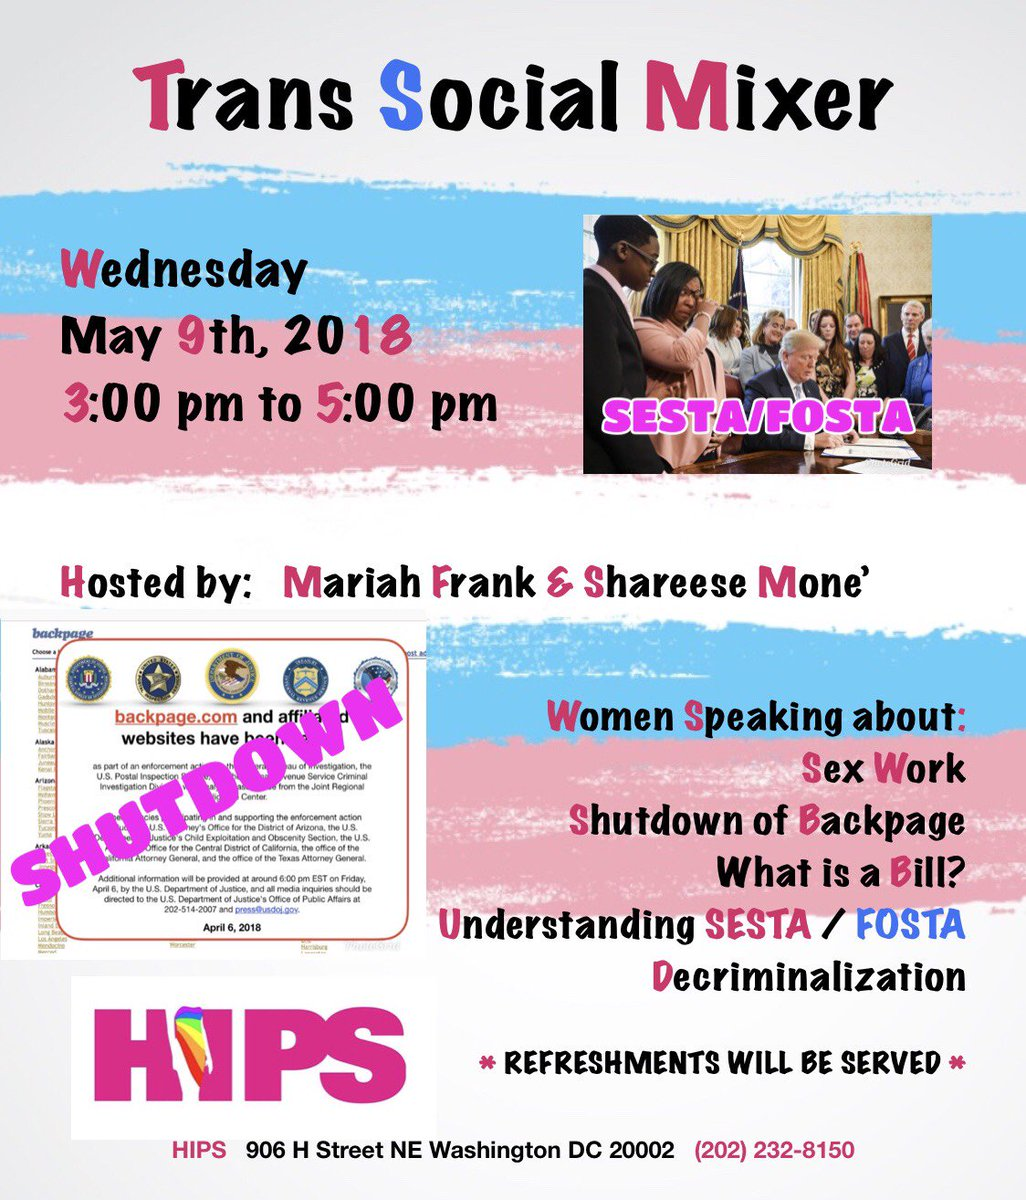 Want To Learn The Impact Of Sesta Fosta Join Us Tomorrow At Hips From 3 5 Pm As We Discuss What Is Going On And What We Can All Do To Help Each Other